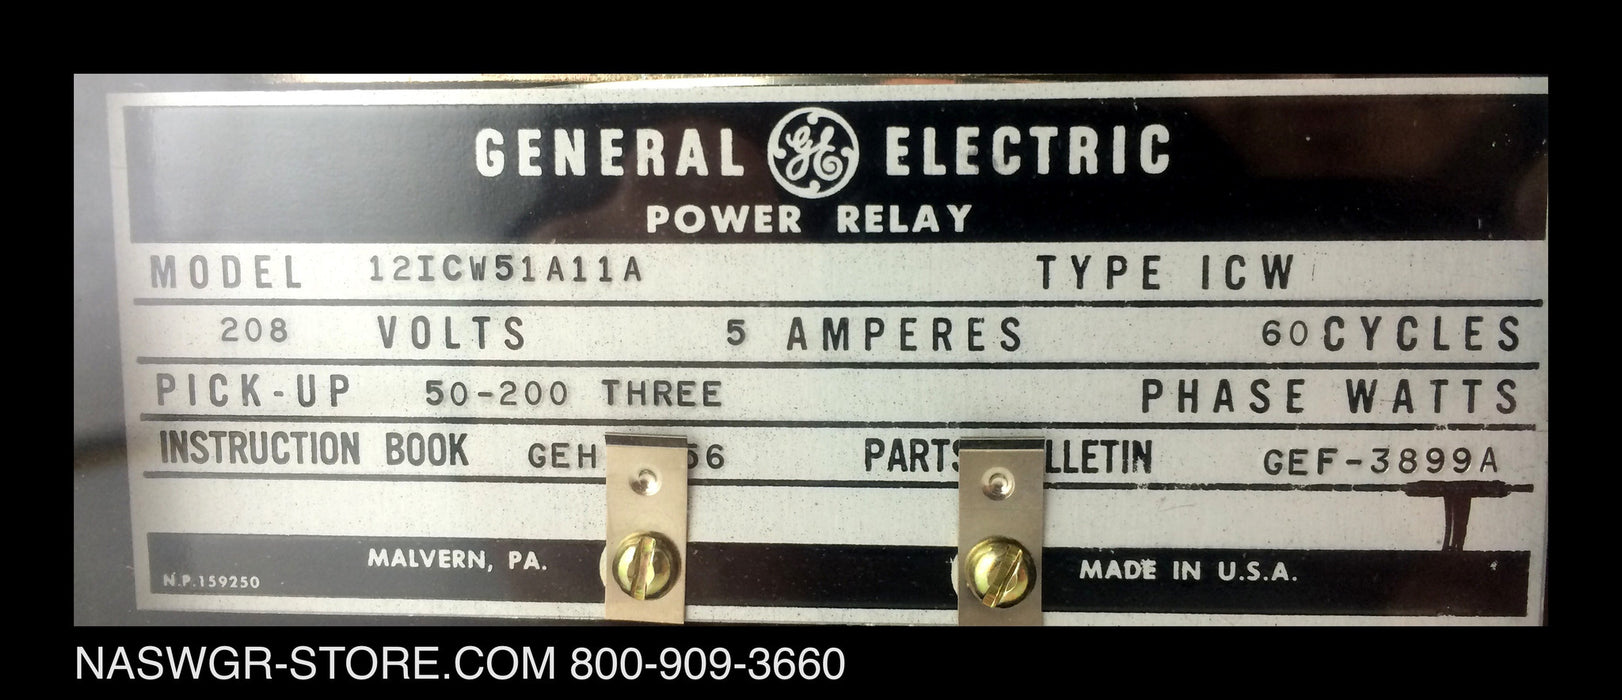 12ICW51A11A ~ GE 12ICW51A11A Power Relay